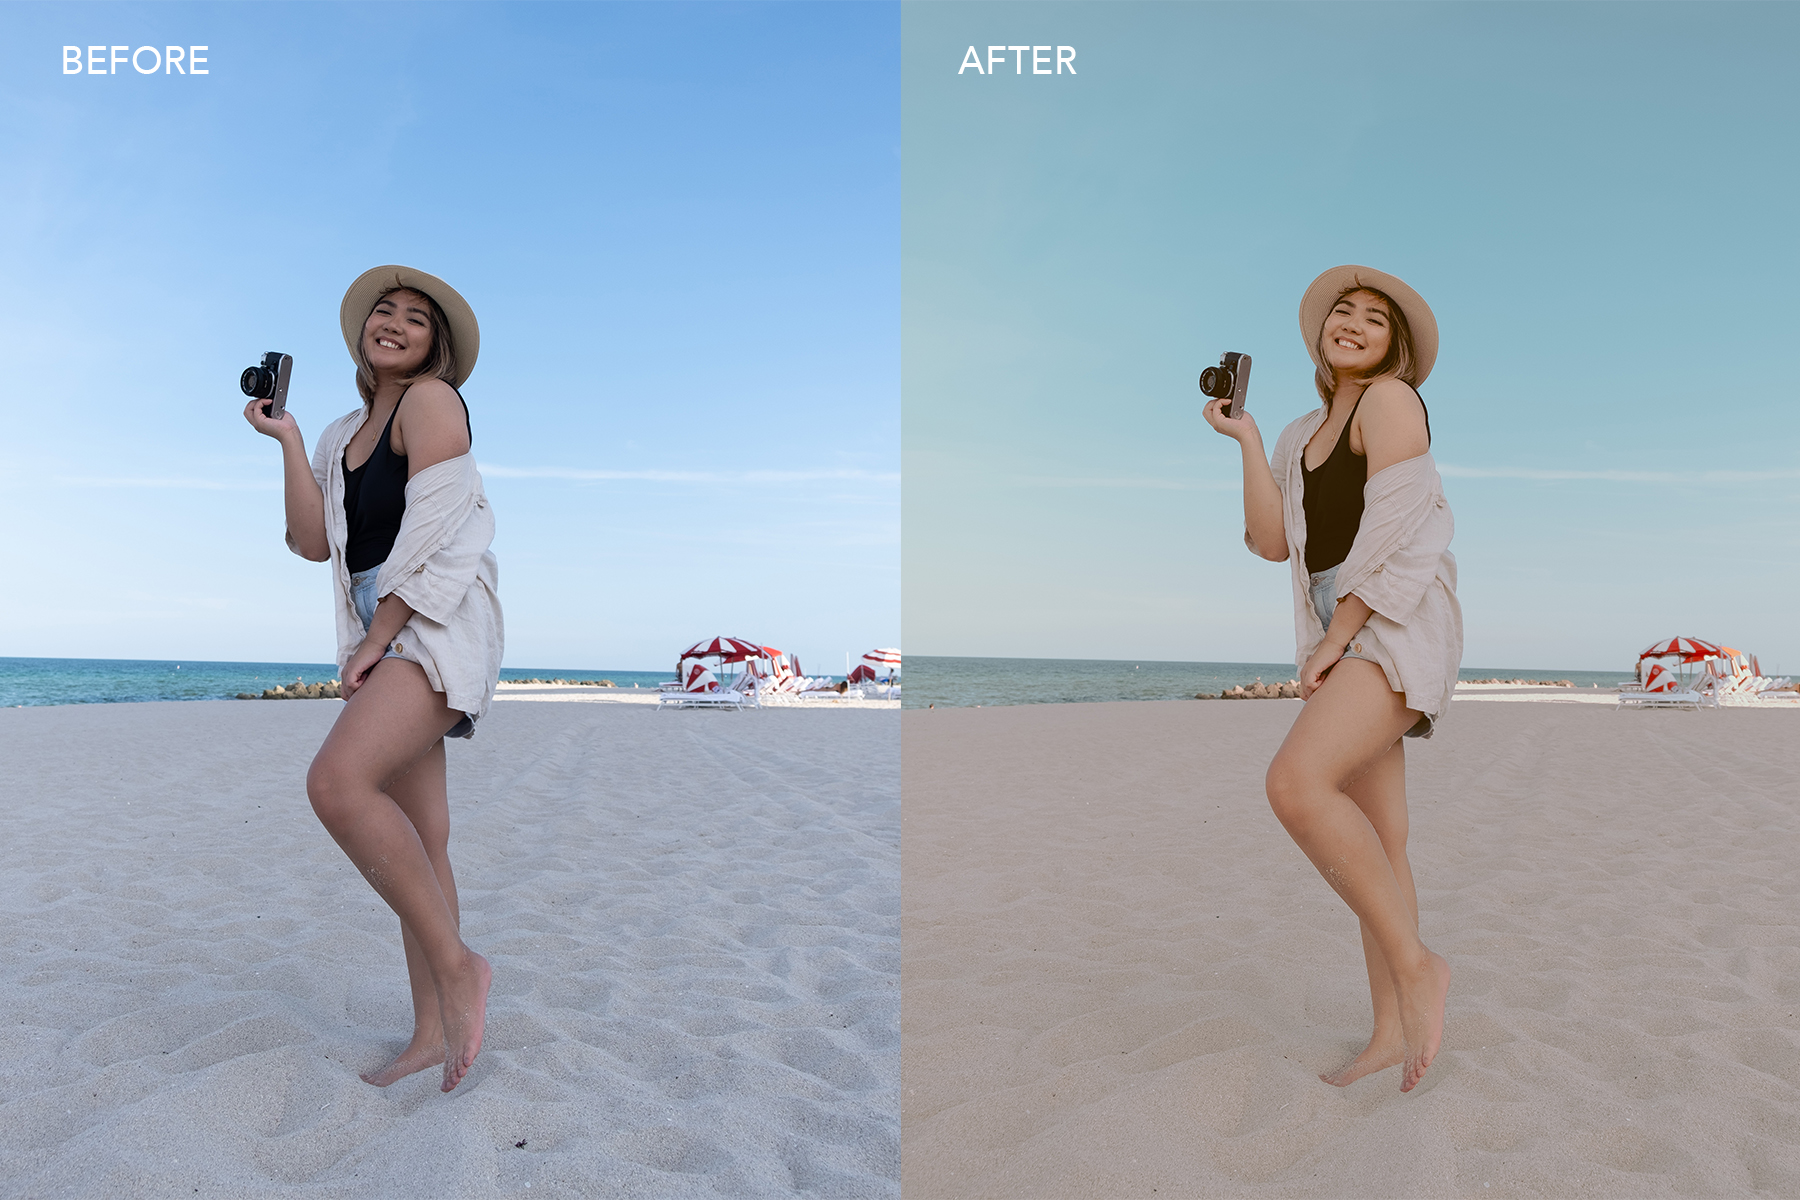 How To Use The Adobe Lightroom Mobile App [VIDEO TUTORIAL]